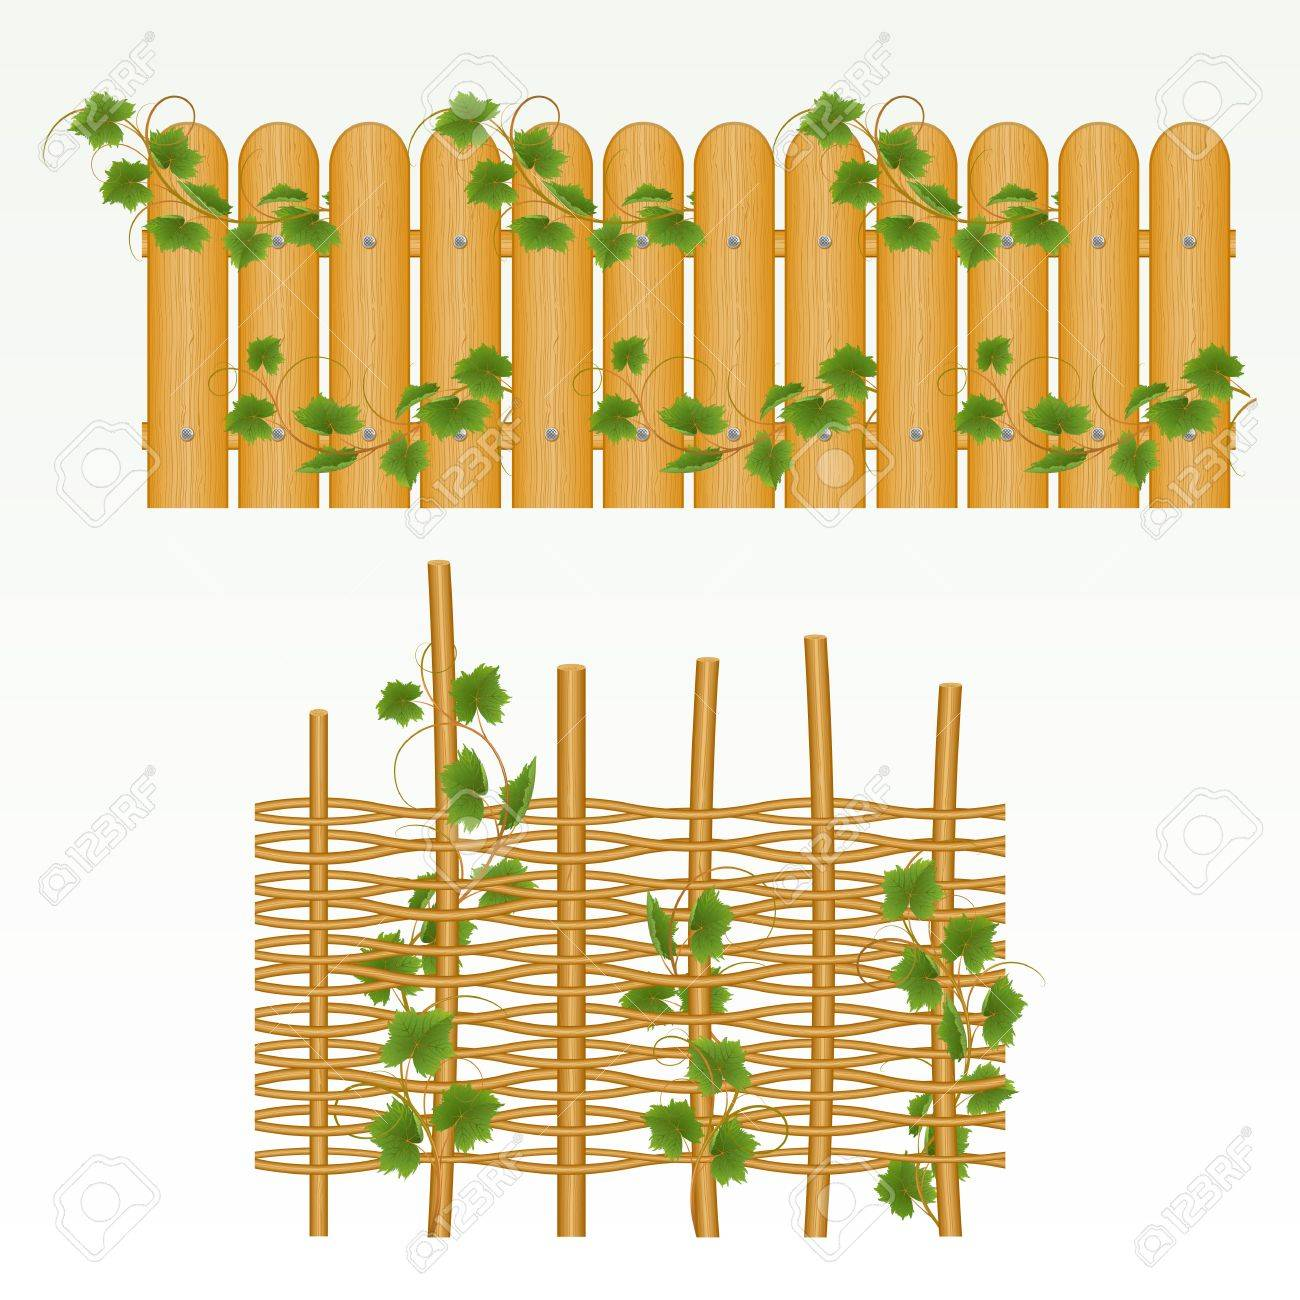 Border with fence and grass green. (can be repeated and scaled in any size) - 9828119